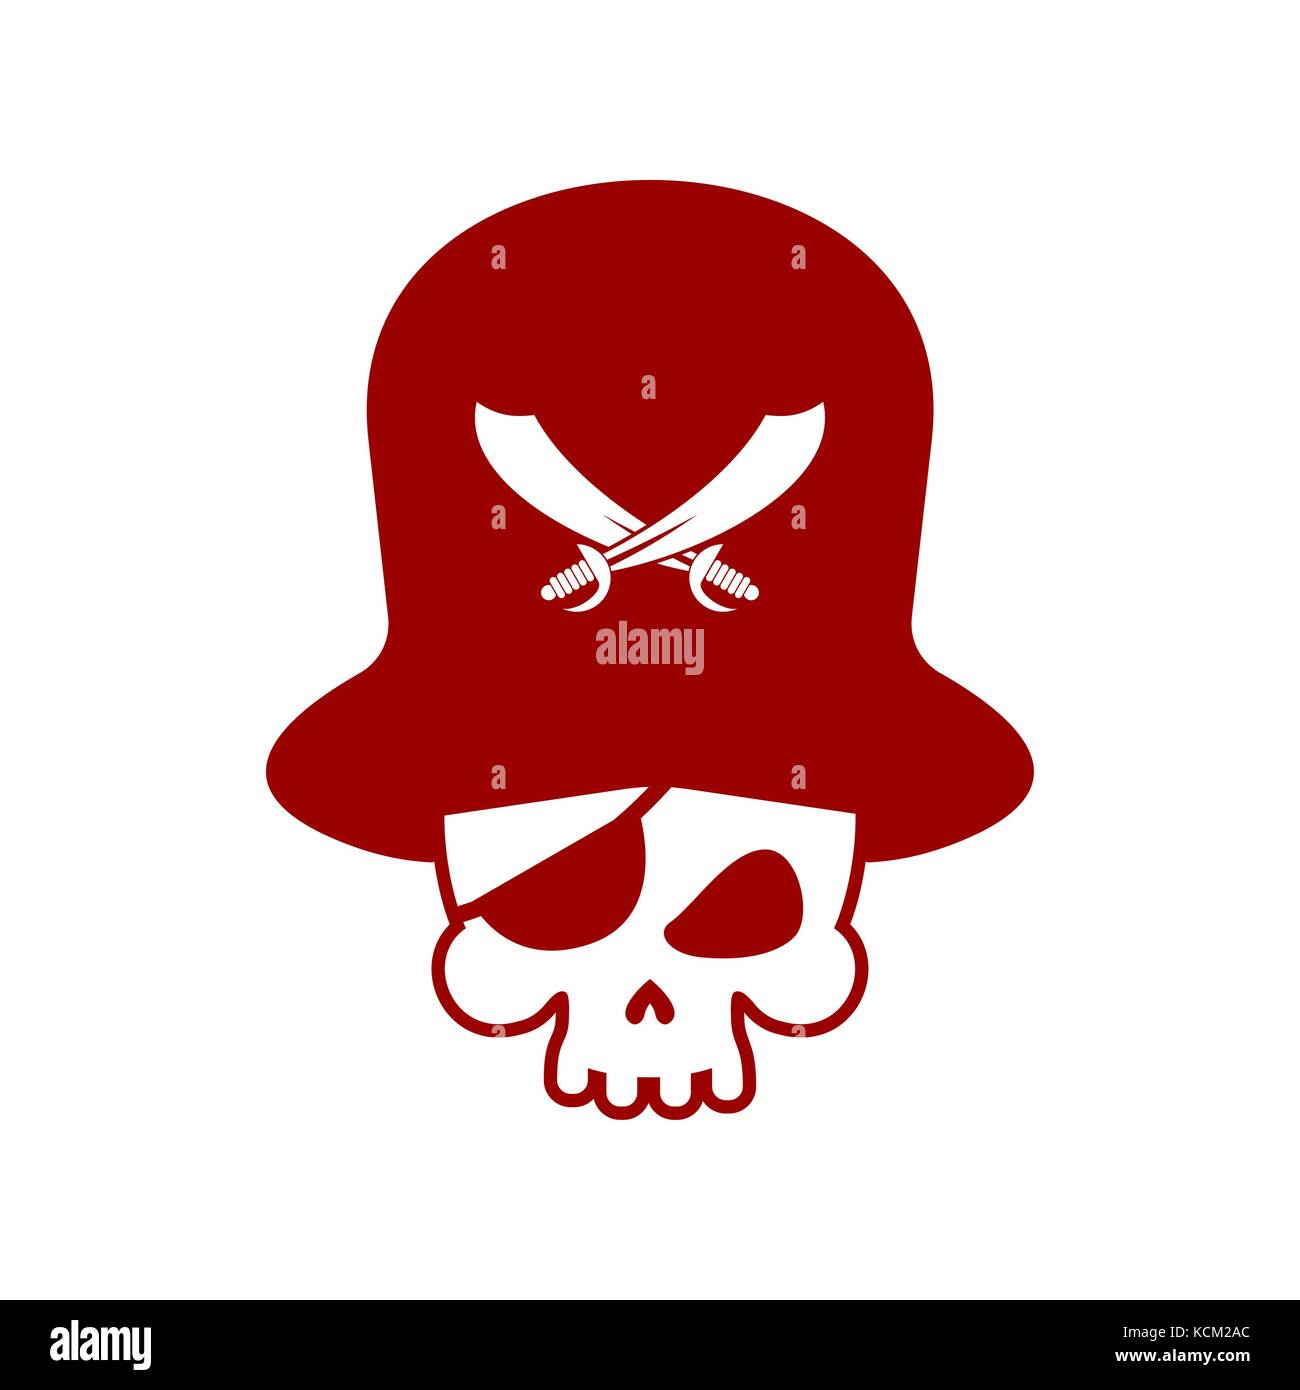 Pirate skull logo head of skeleton and sabers pirate symbol pirate skull logo head of skeleton and sabers pirate symbol vector illustration buycottarizona Images